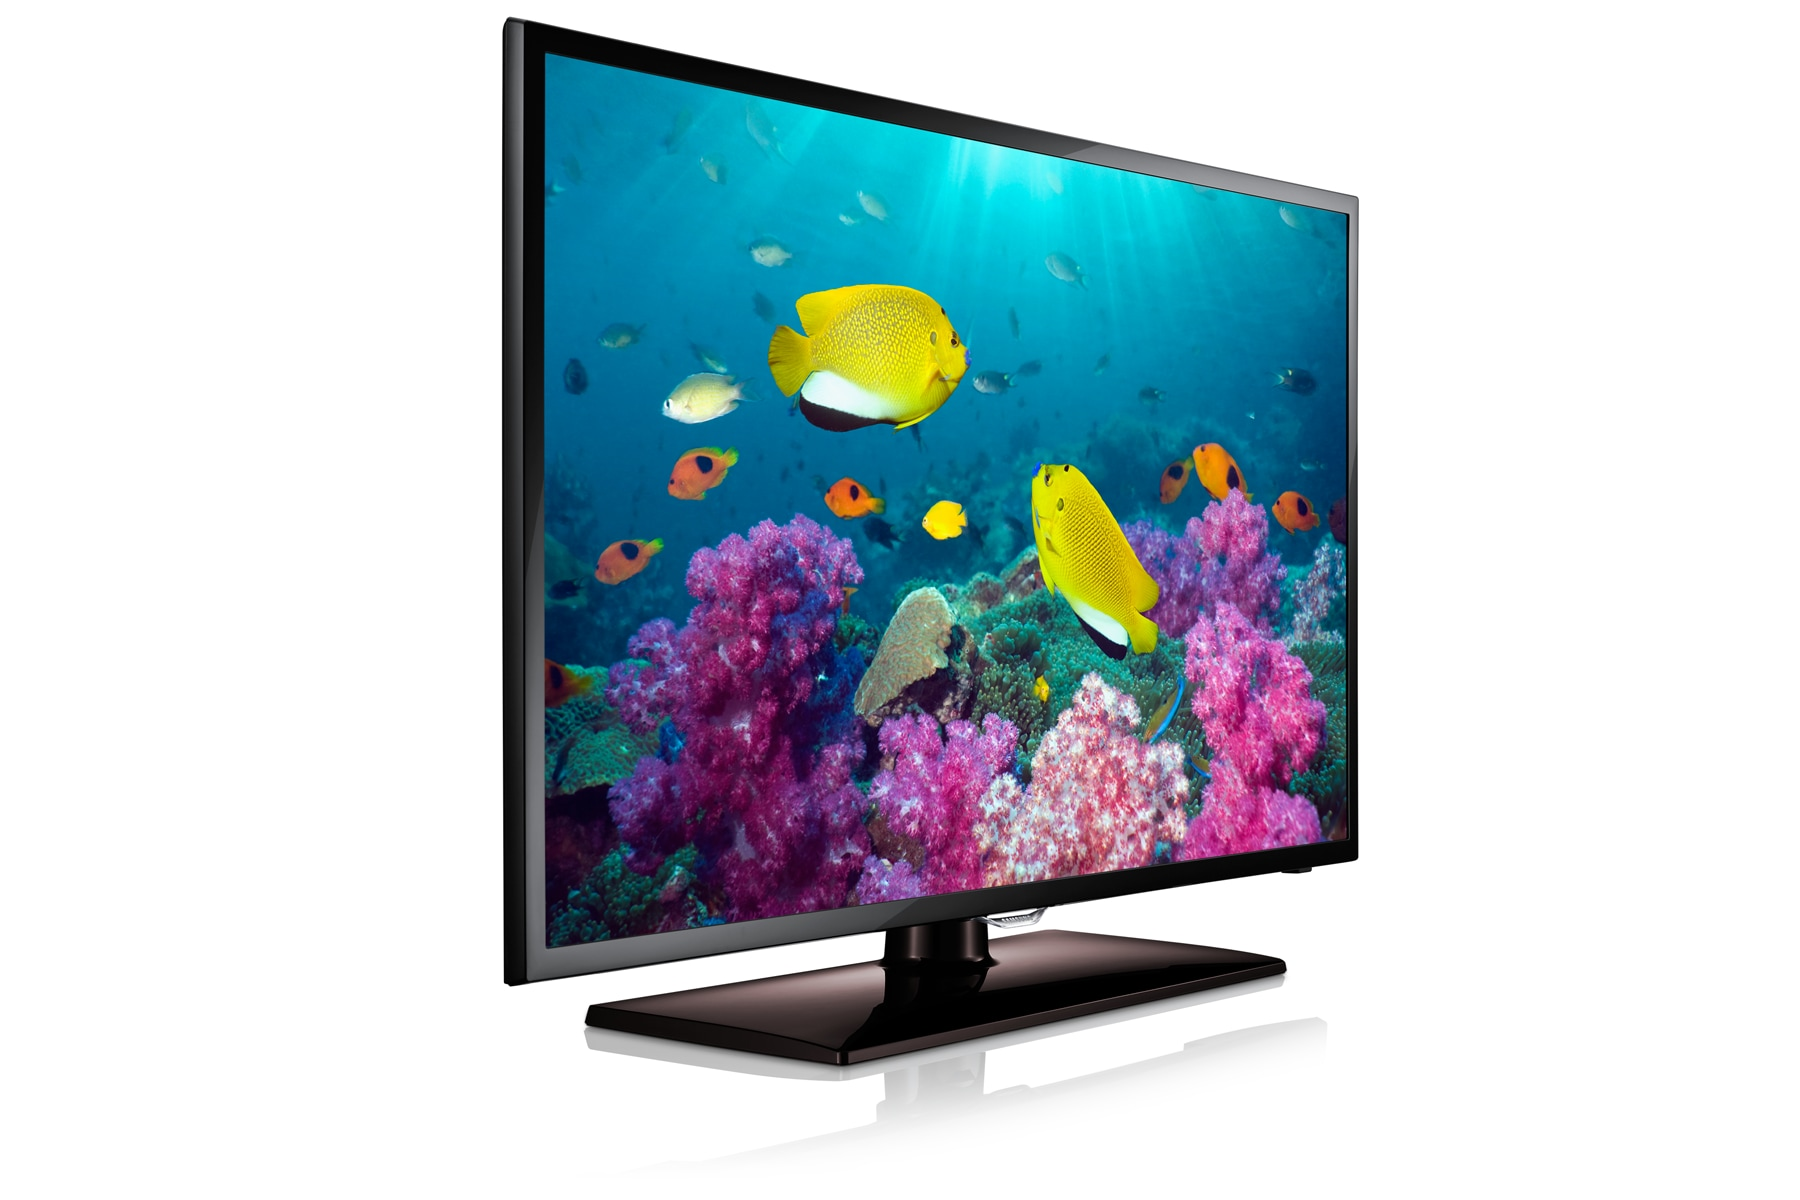 Samsung Ua46f5100ar F5100 Led 46 Television 46f5100 Prices And